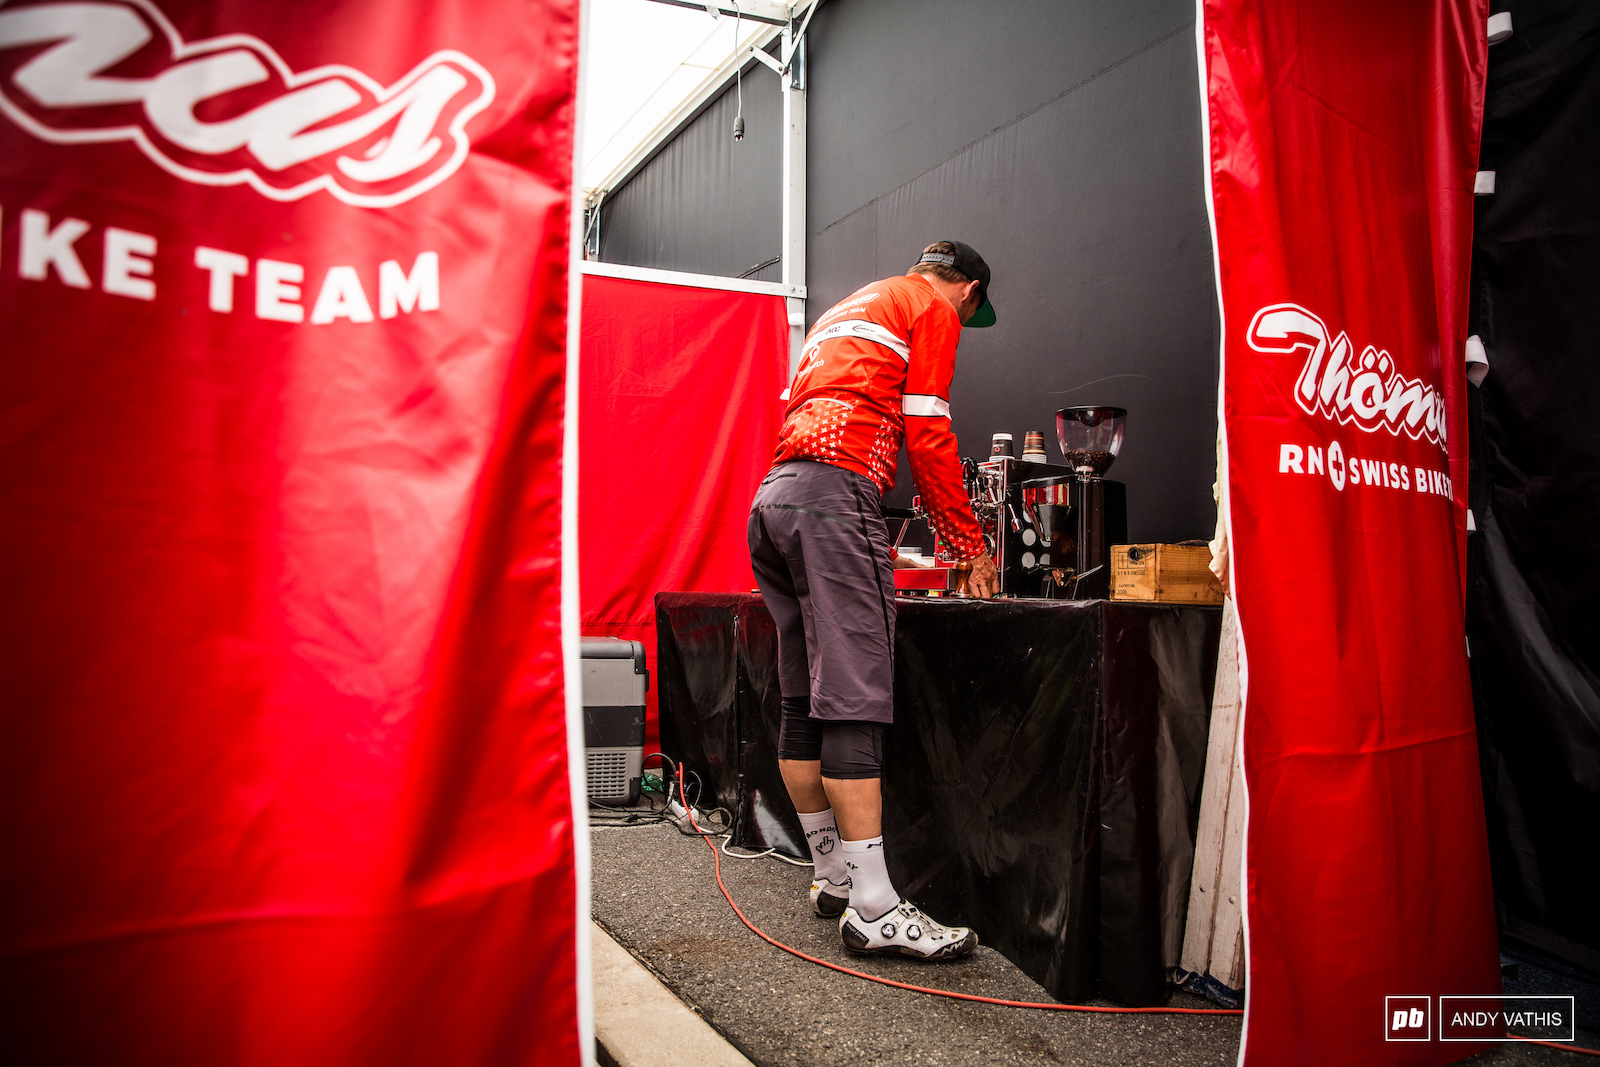 Rumor has it that the Th mas team has the best coffee in the XC circus. I mean they have a dedicated coffee room in the pits This was espresso no. 8 for us but the quality still came through.